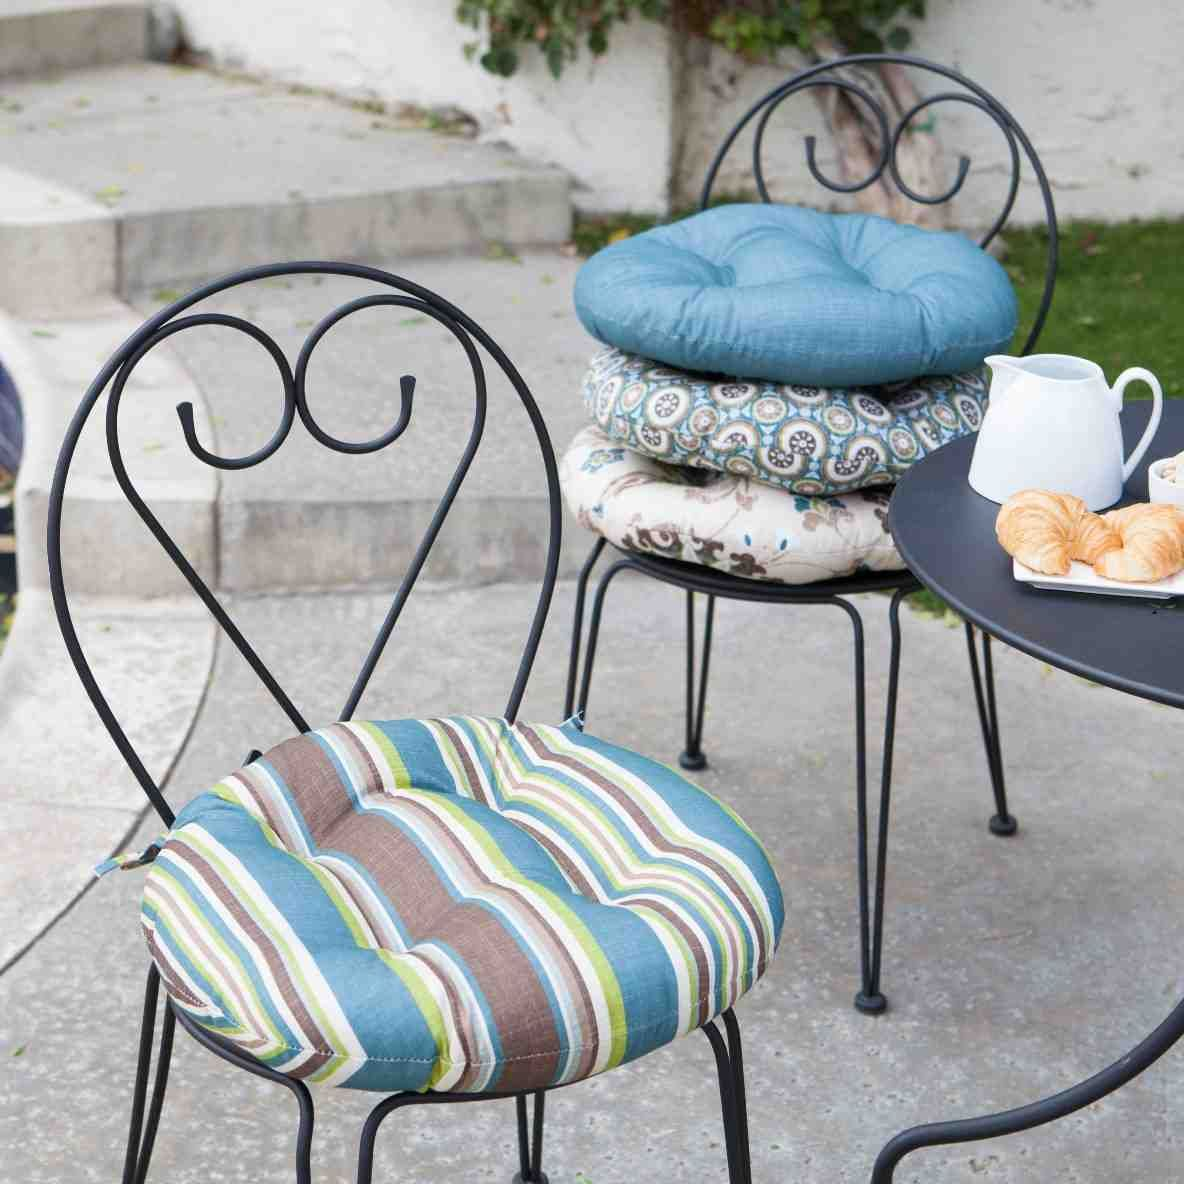 patio chair cushions sale best patio chair cushions patio chair rh pinterest com